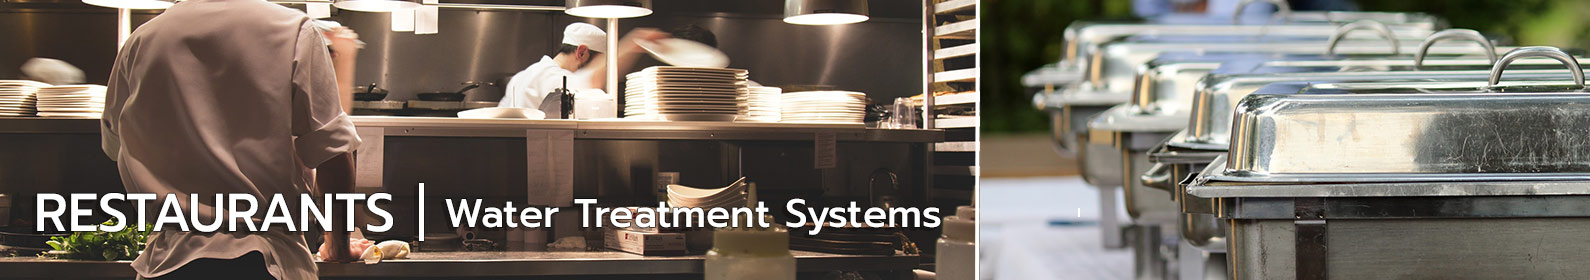 water-treatment-systems-for-restaurant-industry